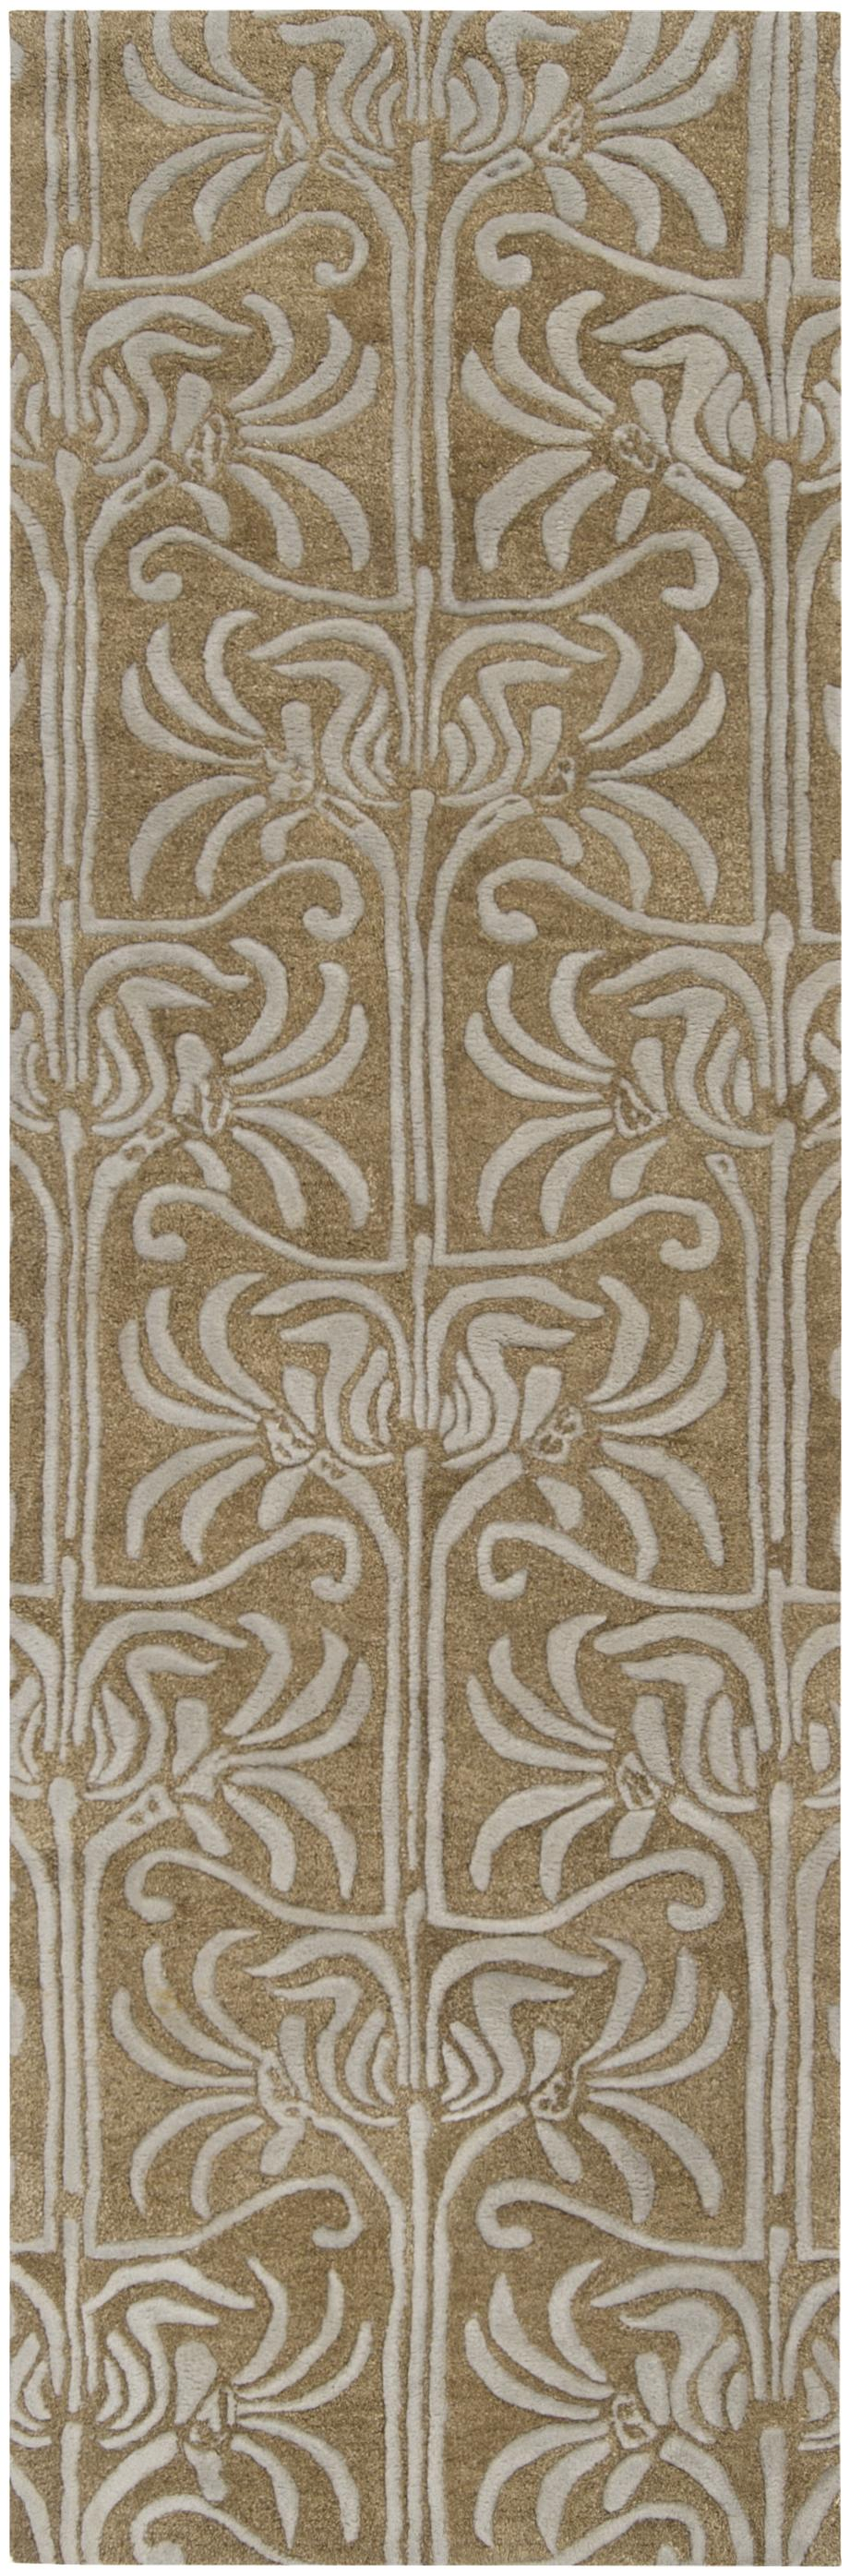 "Surya Rugs Natura 2'6"" x 8' - Item Number: NAT7037-268"